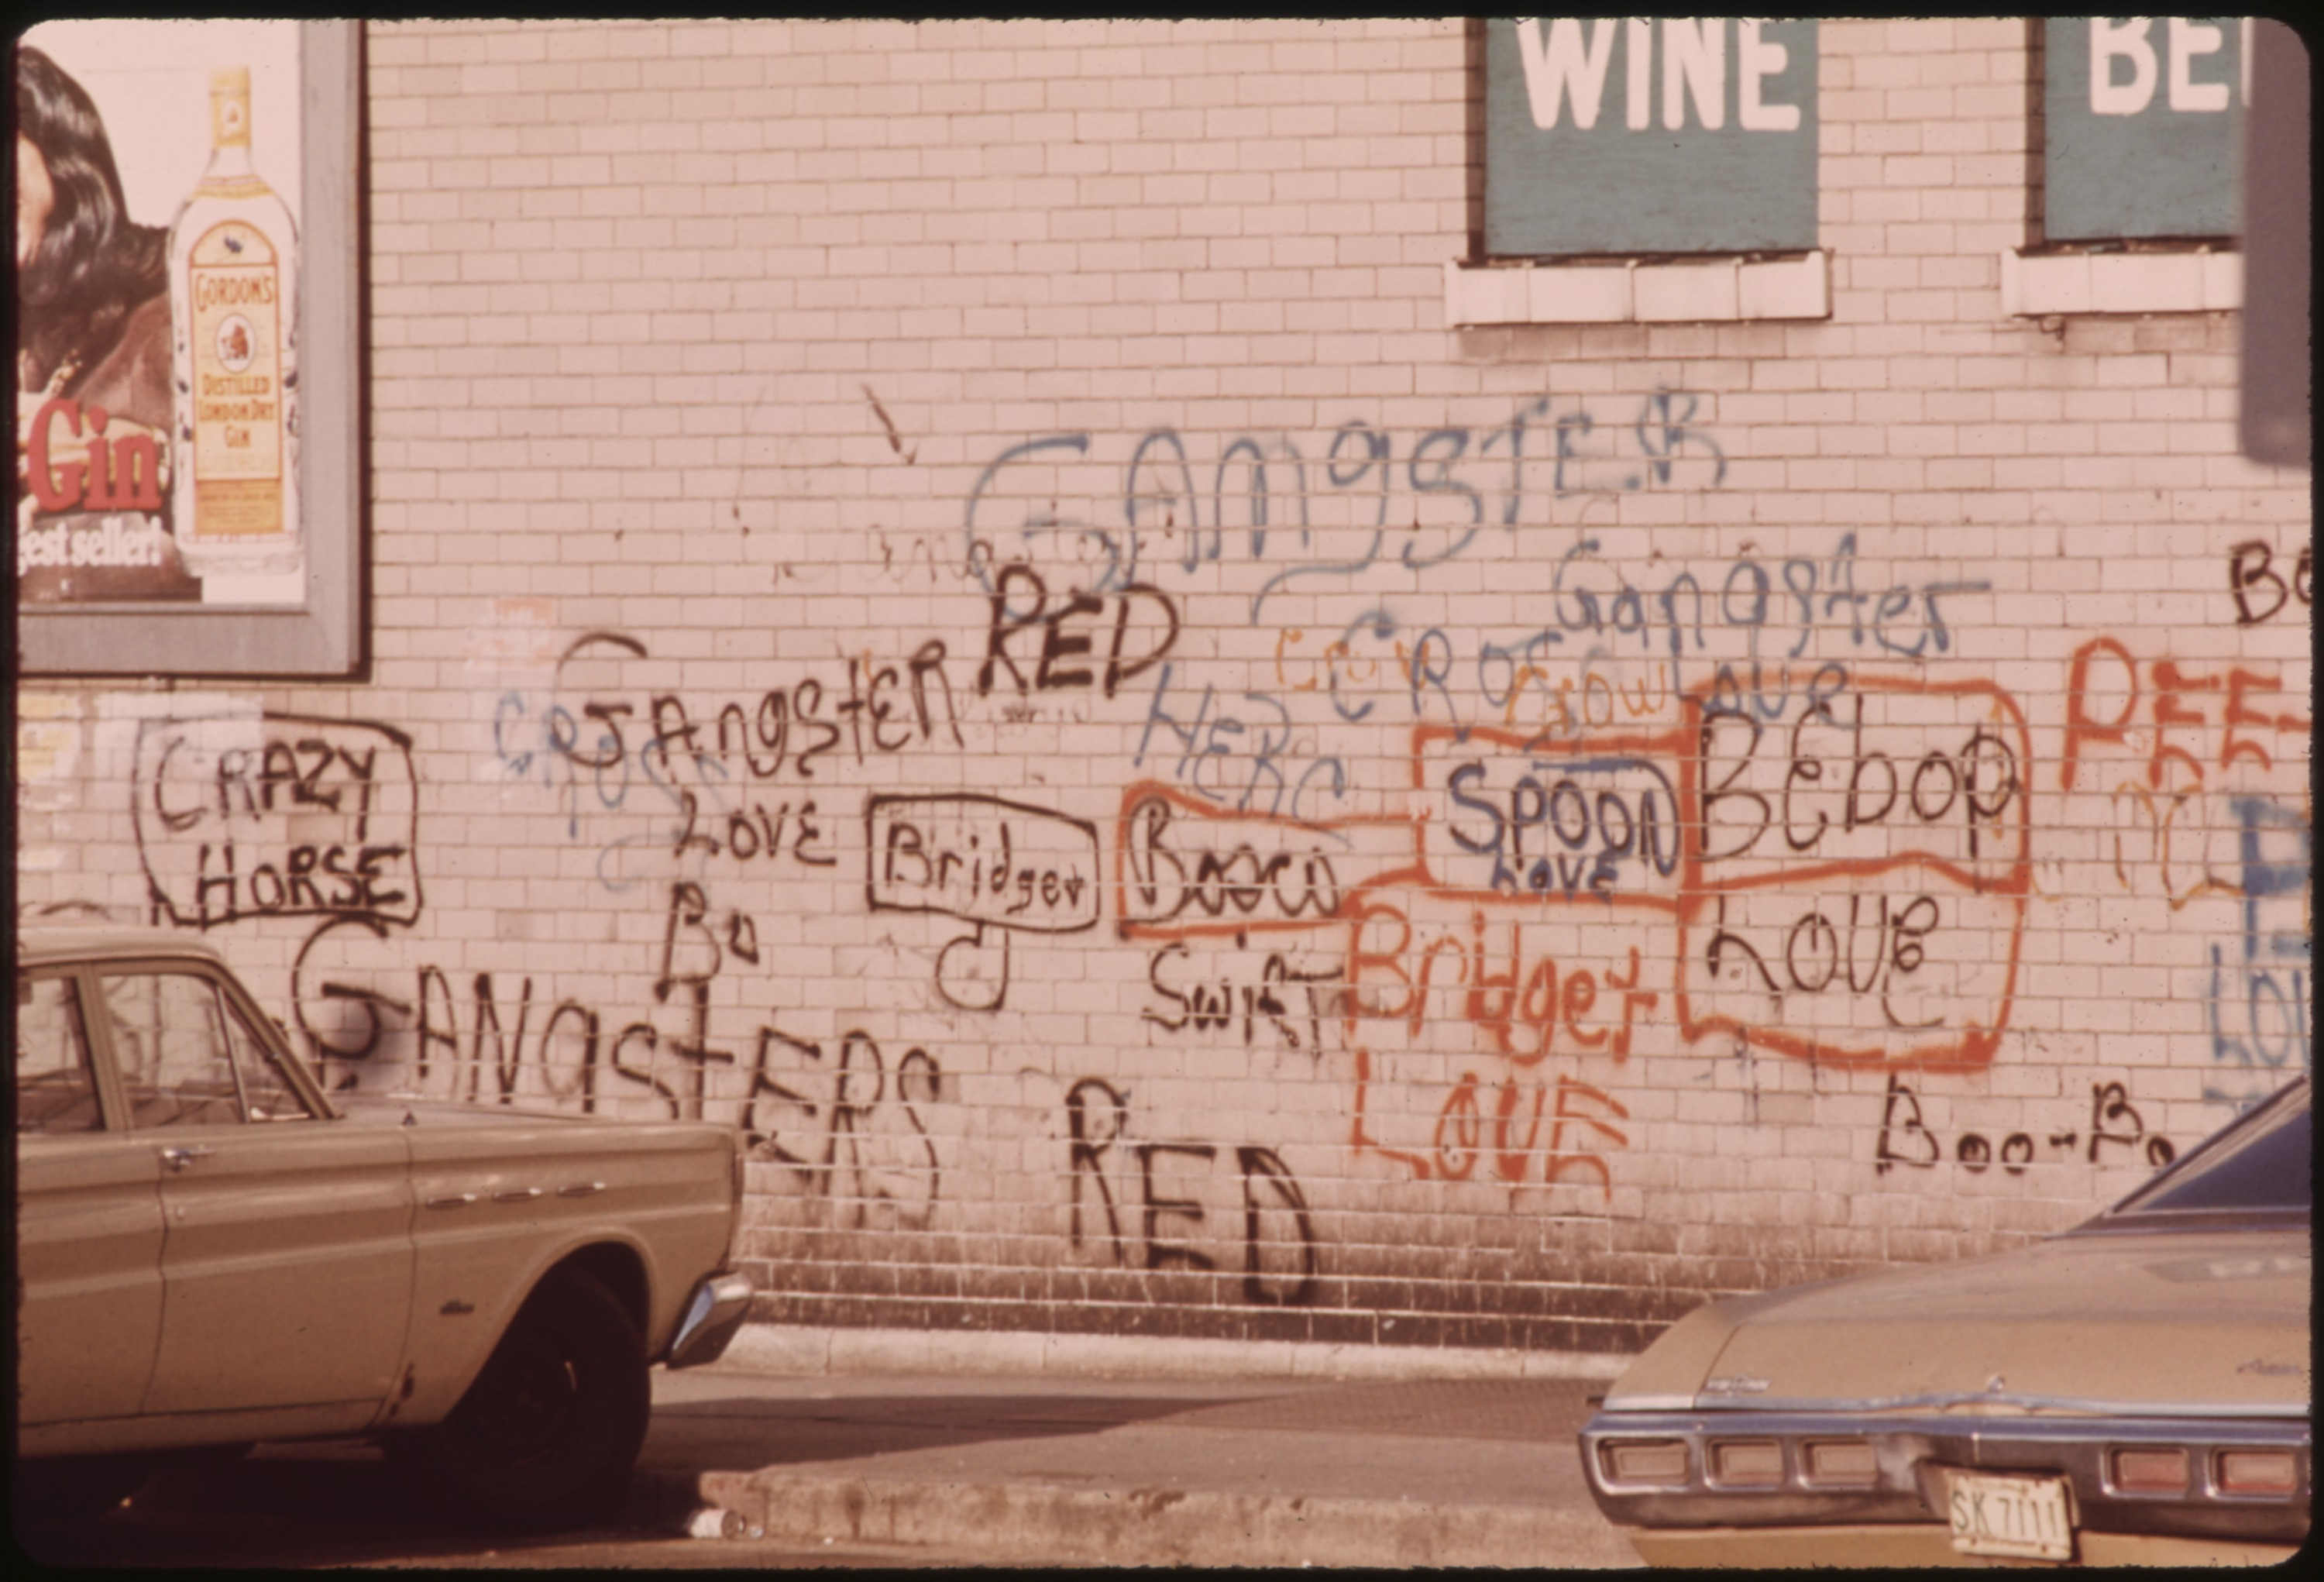 Graffiti wall text - File Graffiti On A Wall In Chicago Such Writing Has Advanced And Become An